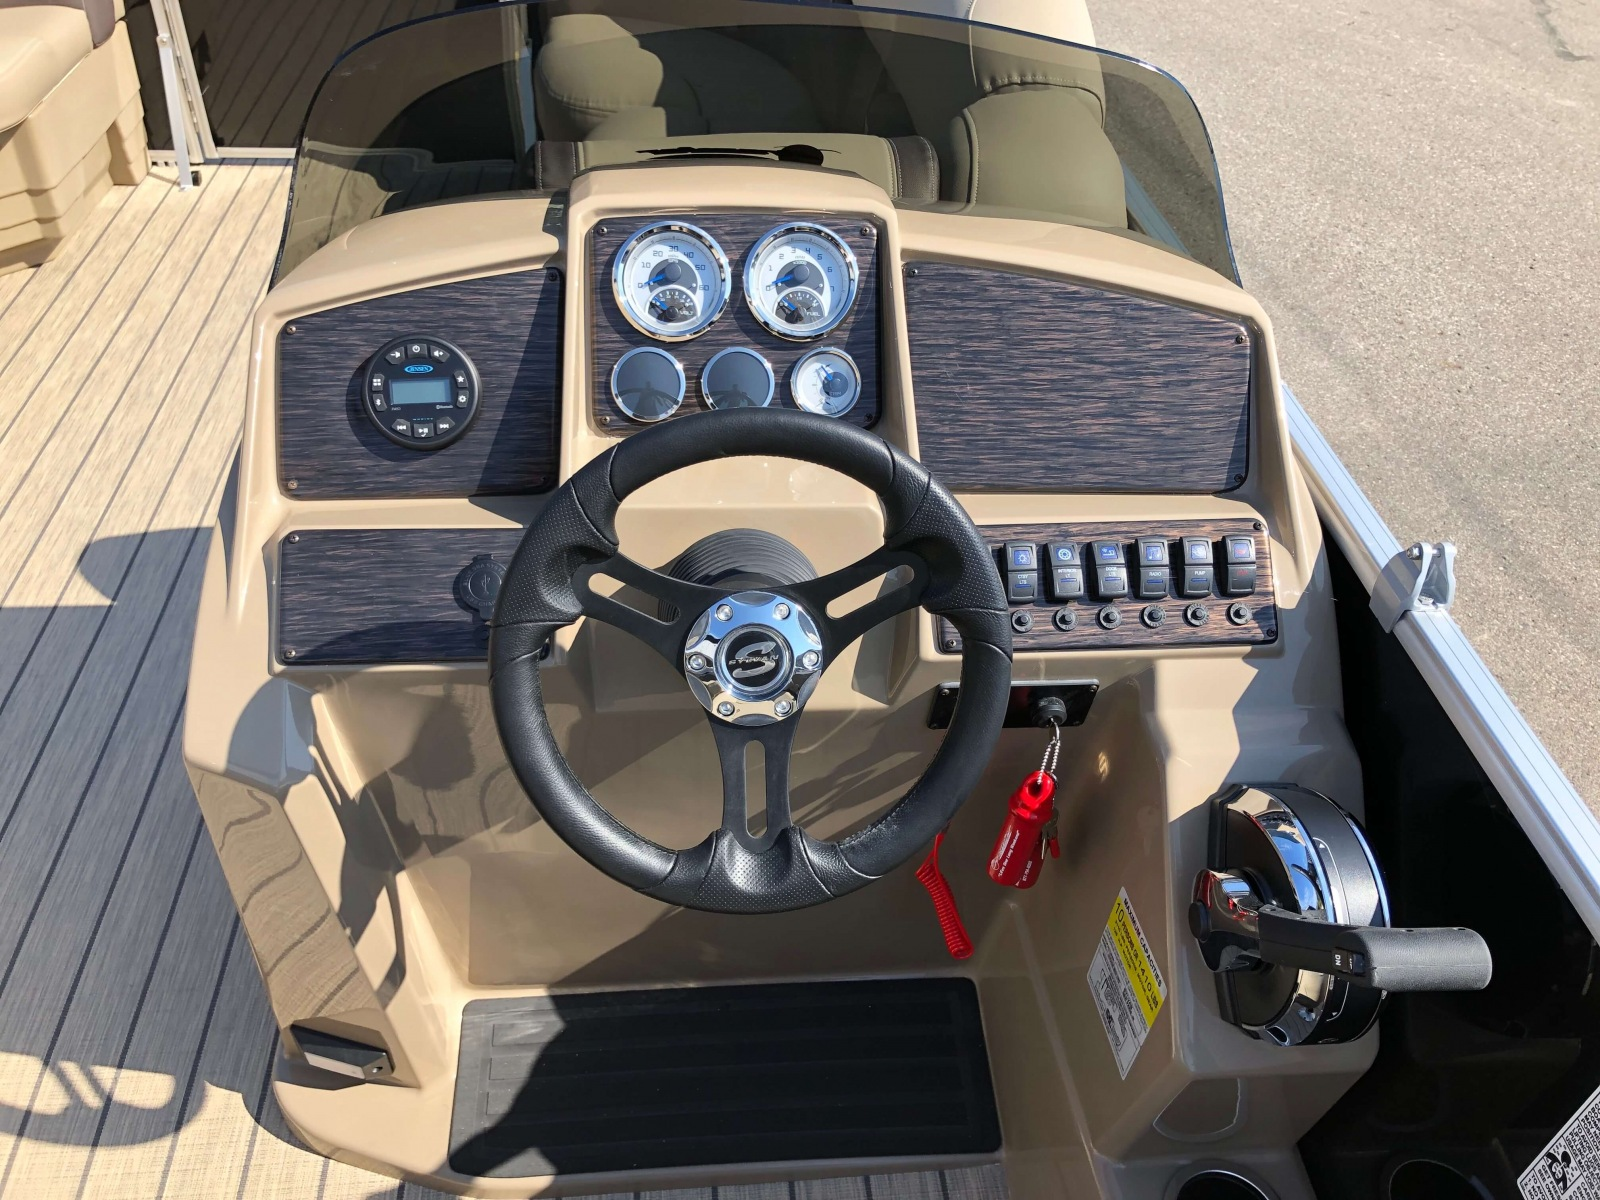 Drivers Console of a 2021 Sylvan 8520 Cruise Pontoon